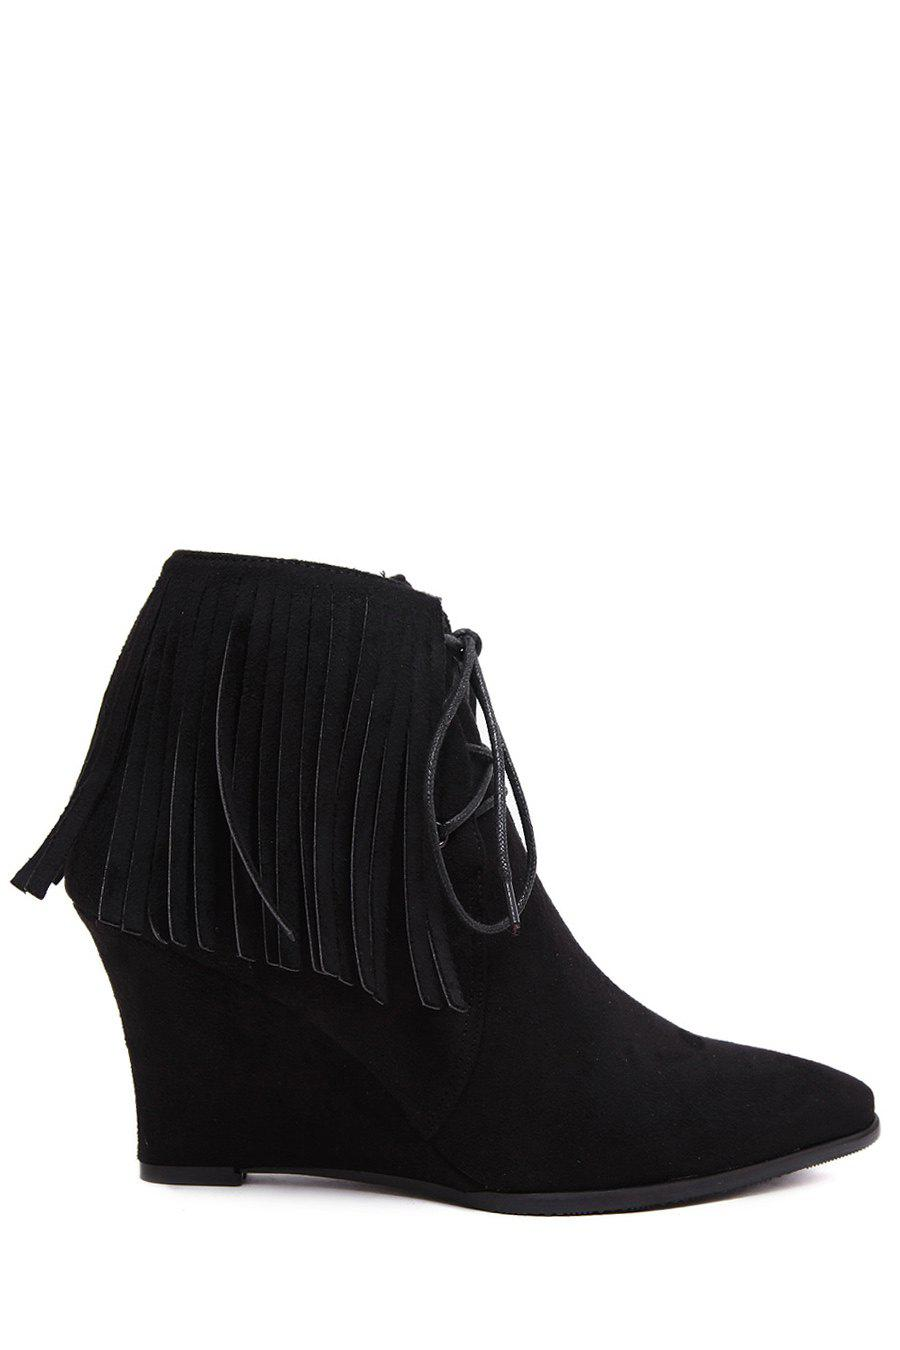 Trendy Fringe and Wedge Heel Design Women's Short Boots - BLACK 37